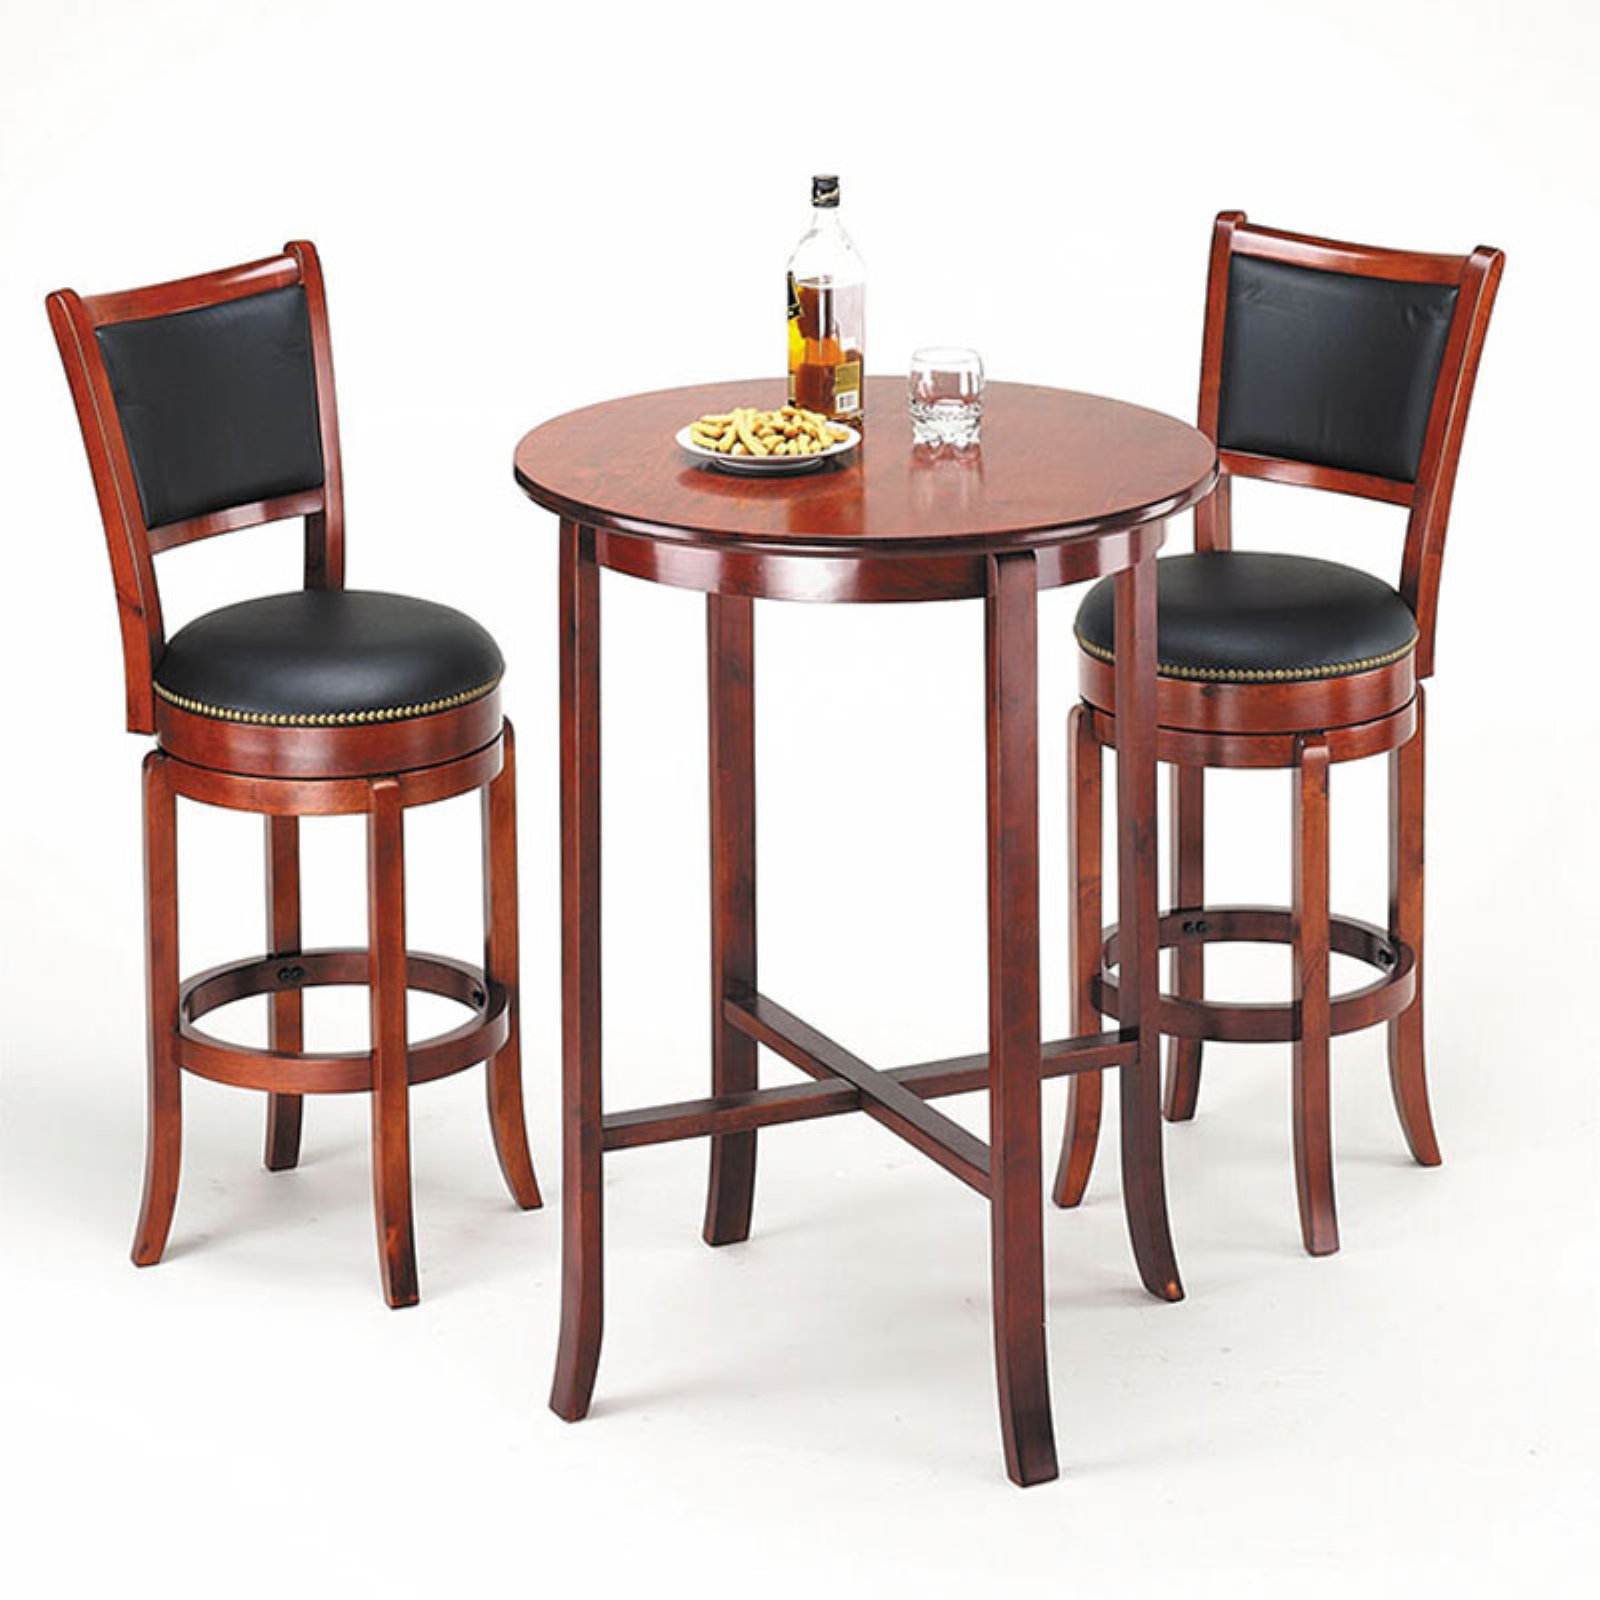 Acme Furniture Chelsea 3 Piece Round Pub Table Set by Acme Furniture